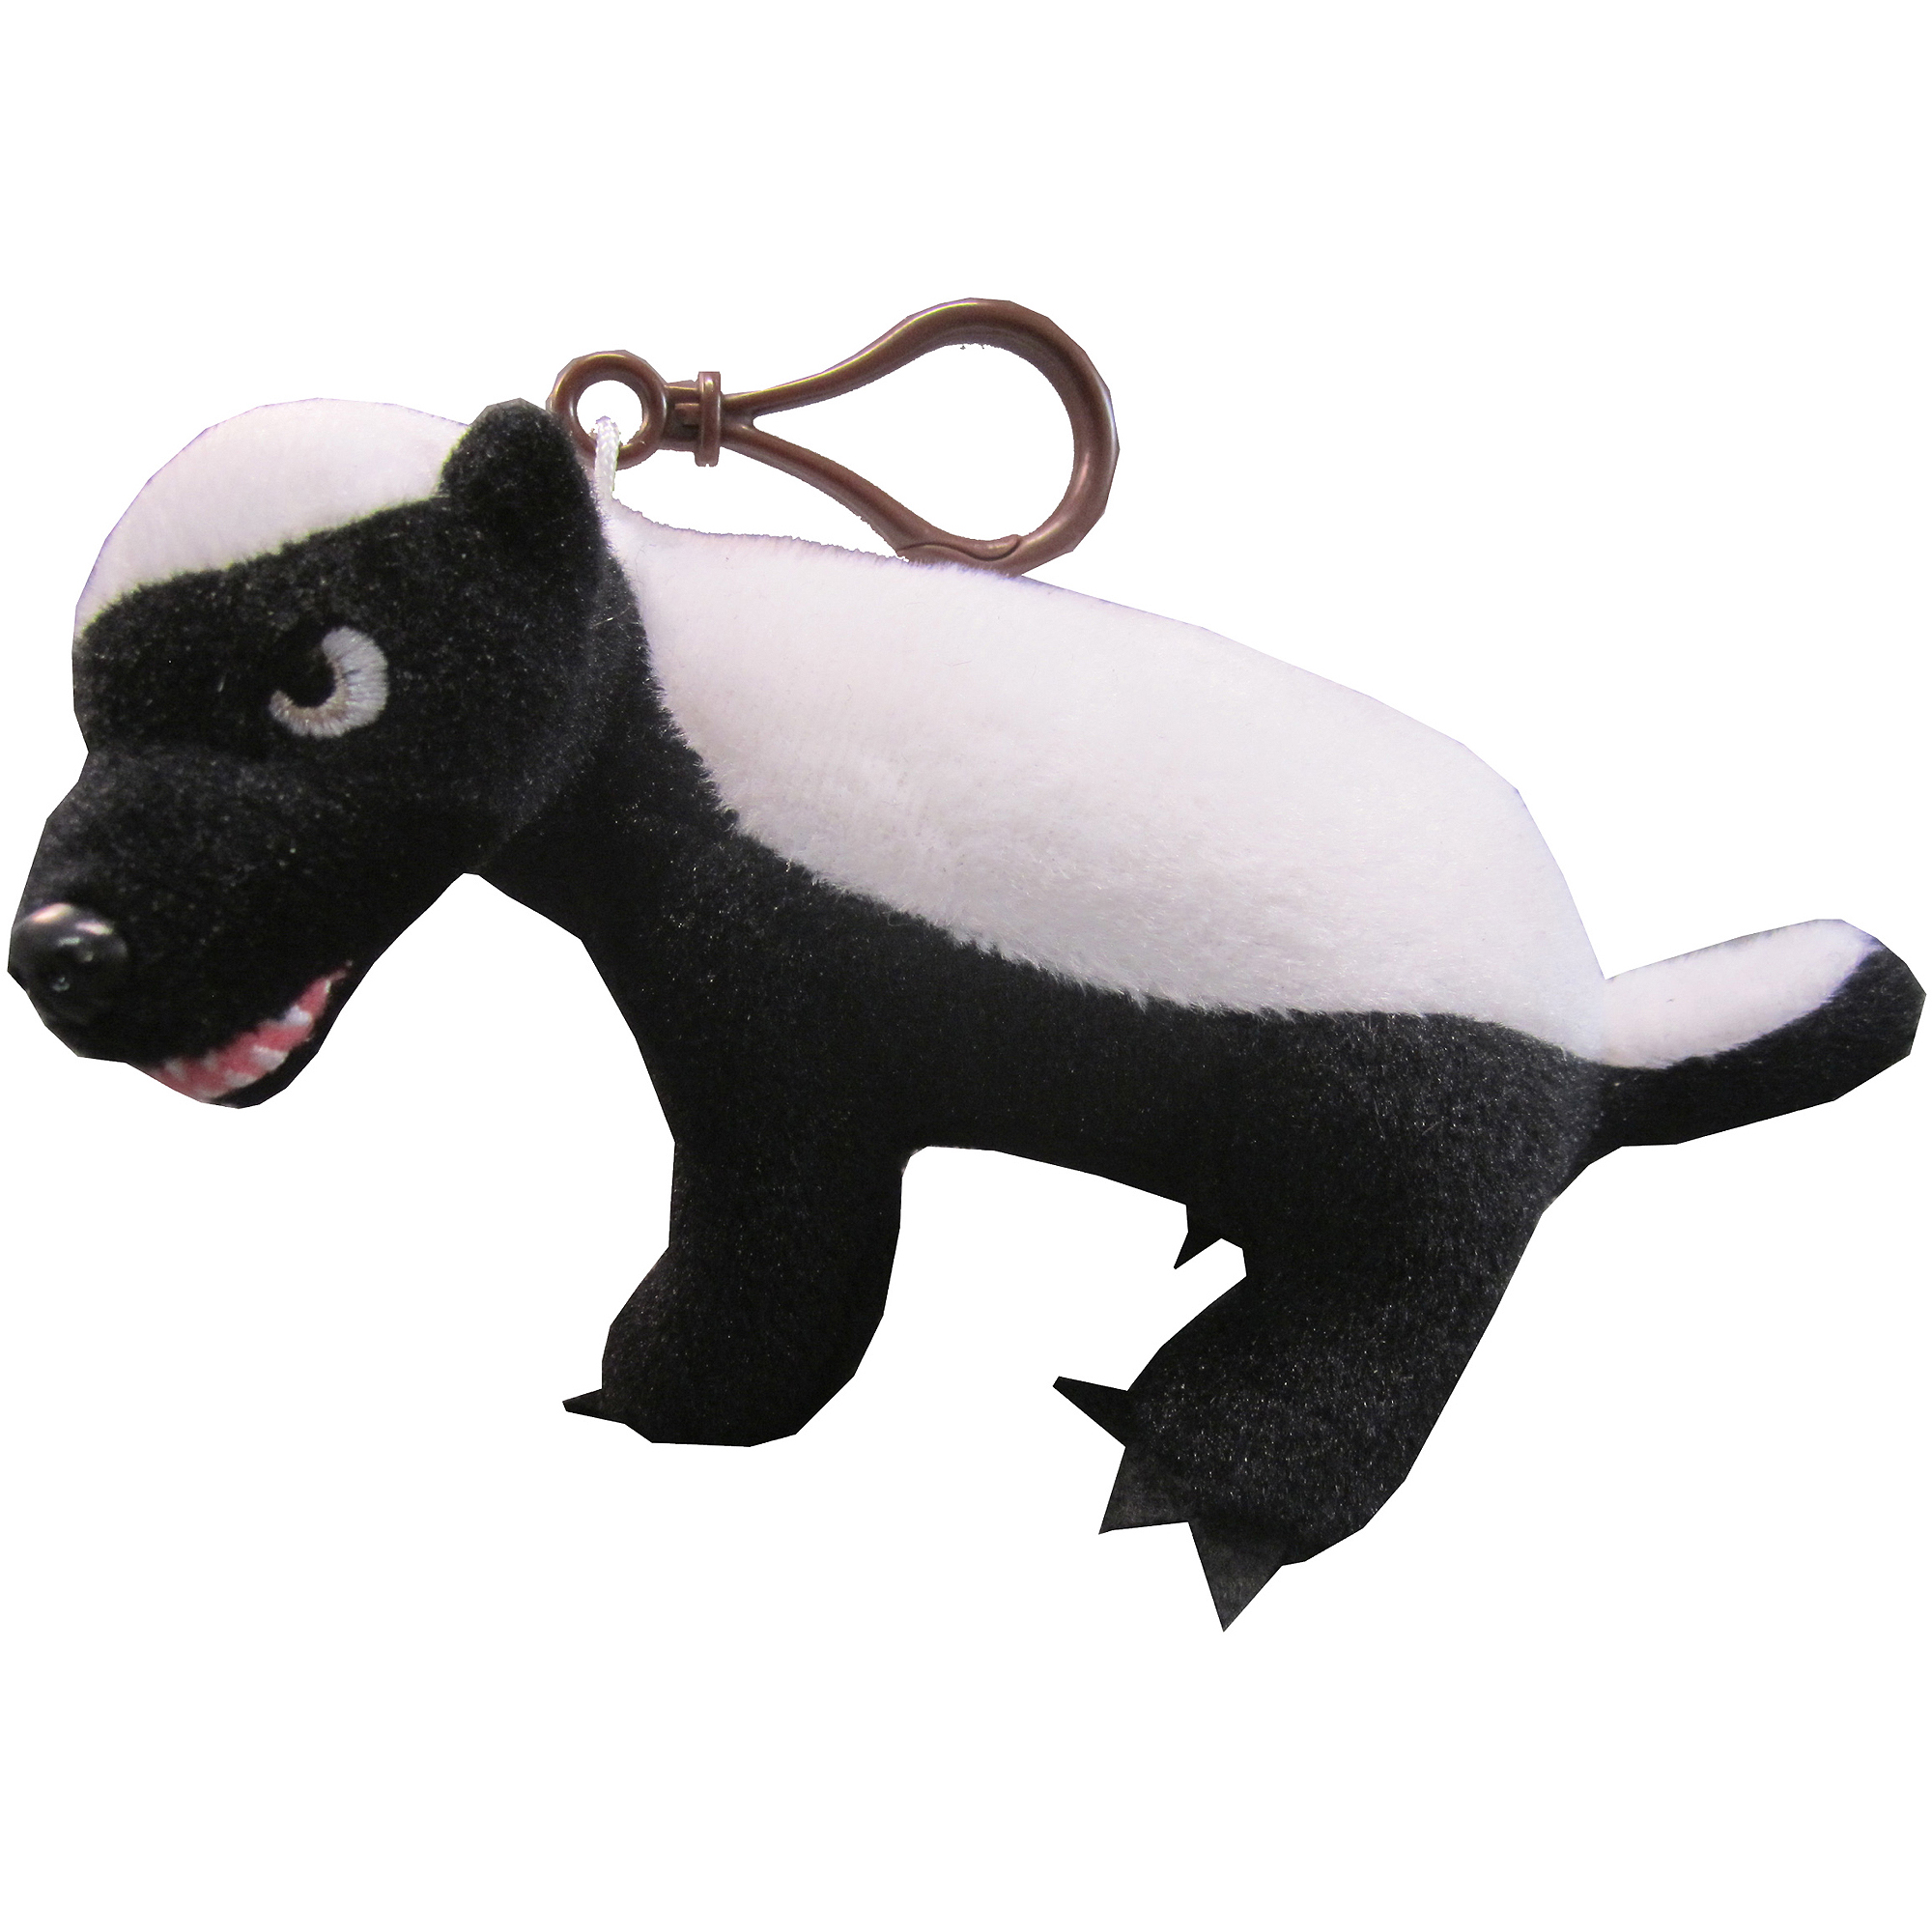 "Honey Badger Plush Clip On [""R"" Rated Version]"